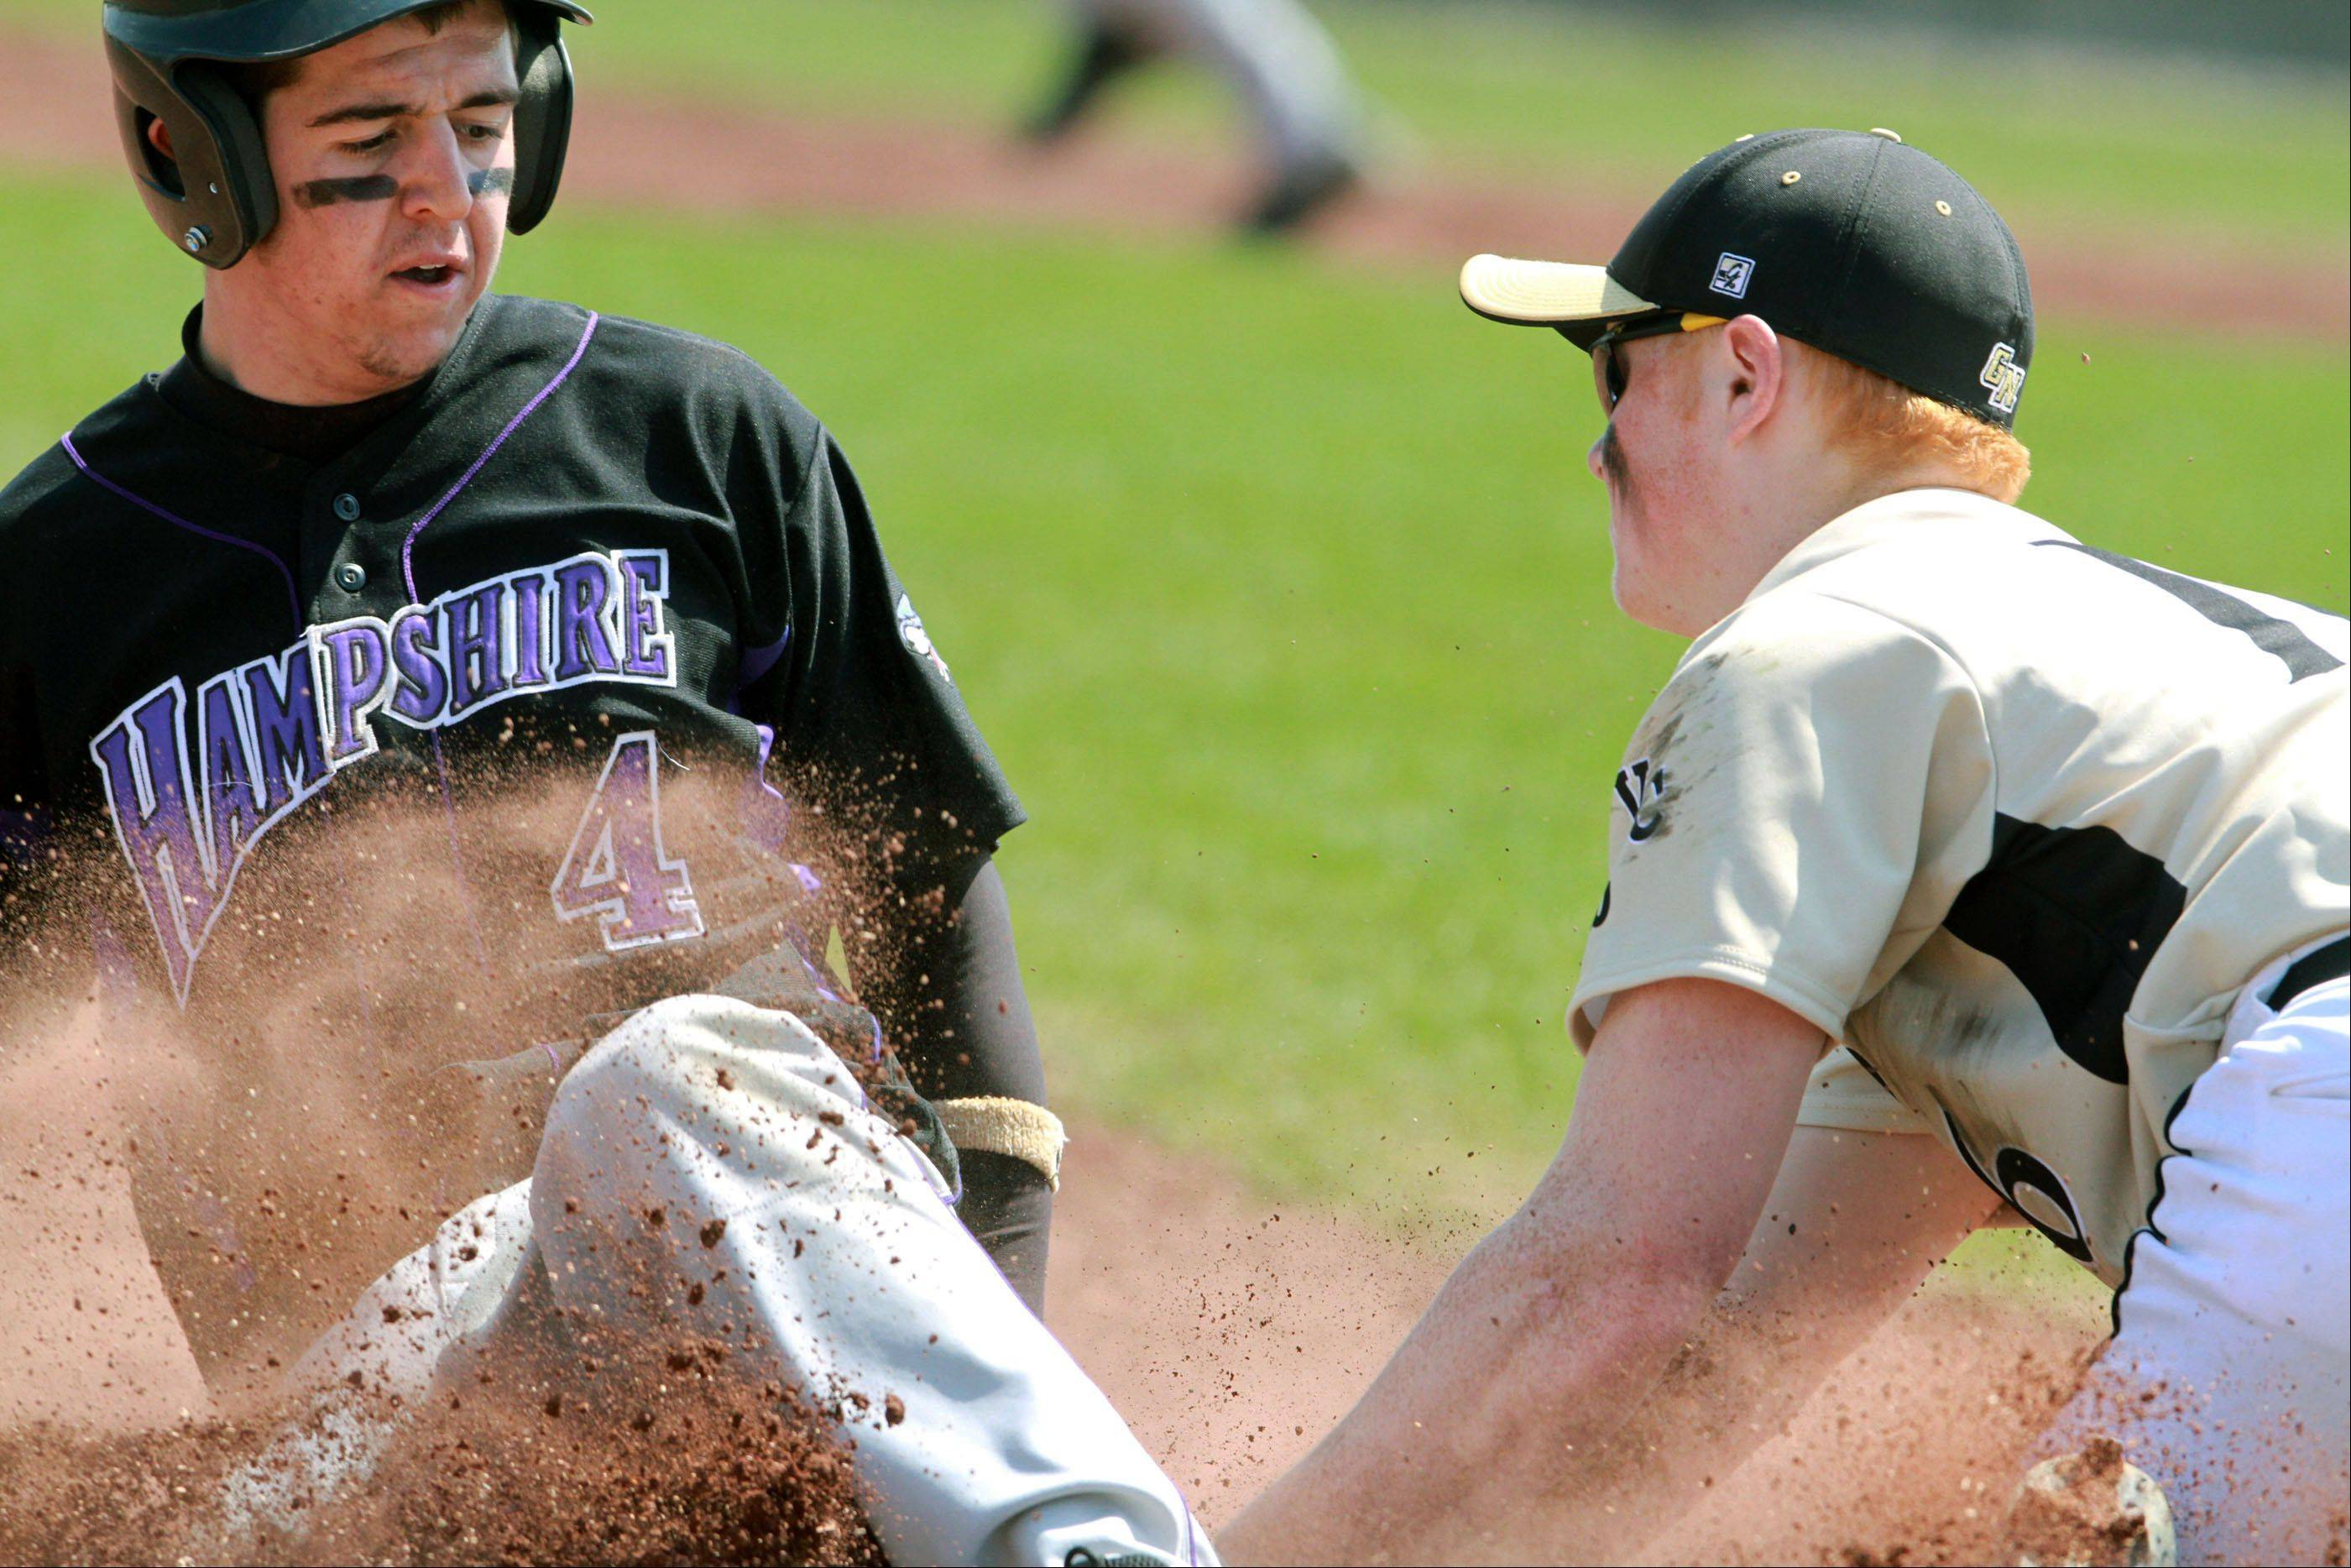 Hampshire's Michael Laramie is out at third as Grayslake North third baseman Merrick Gentile applies the tag Saturday.